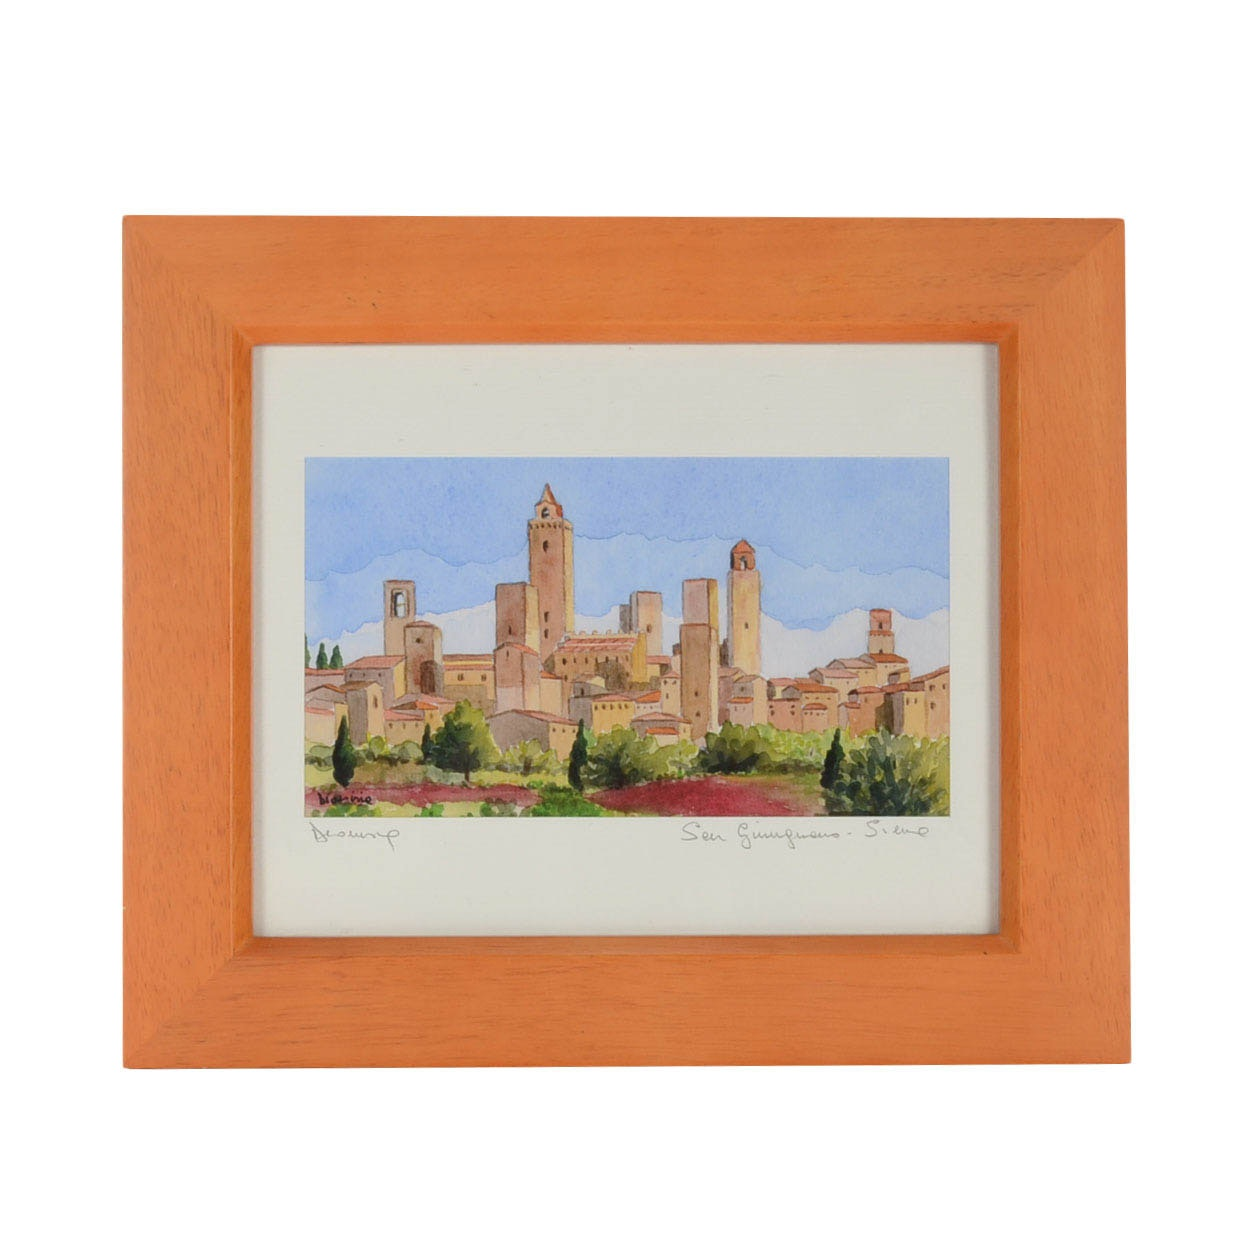 "Signed Watercolor Painting ""San Gimignano - Siena"""